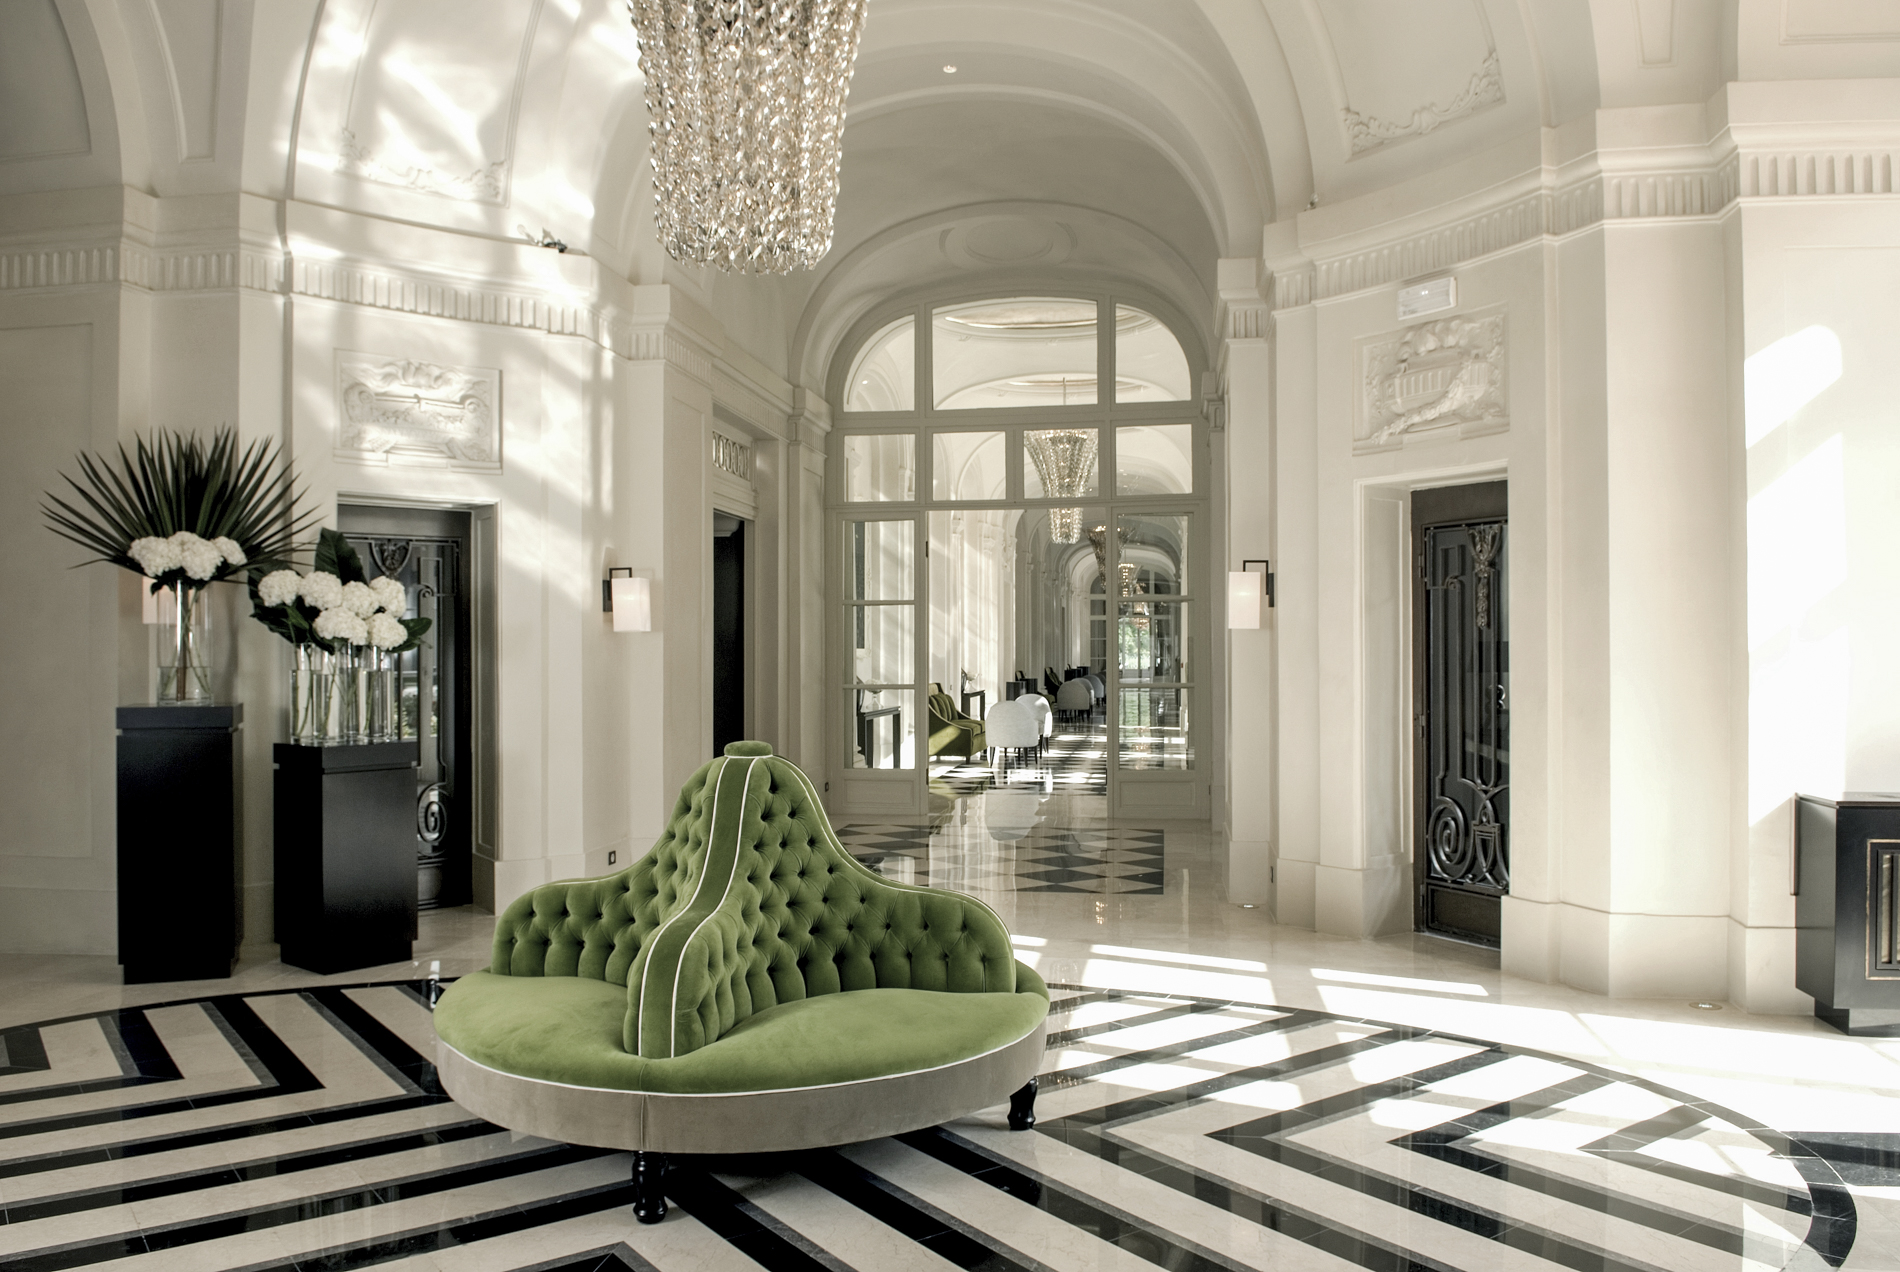 The lobby at the Trianon Palace hotel, Versailles